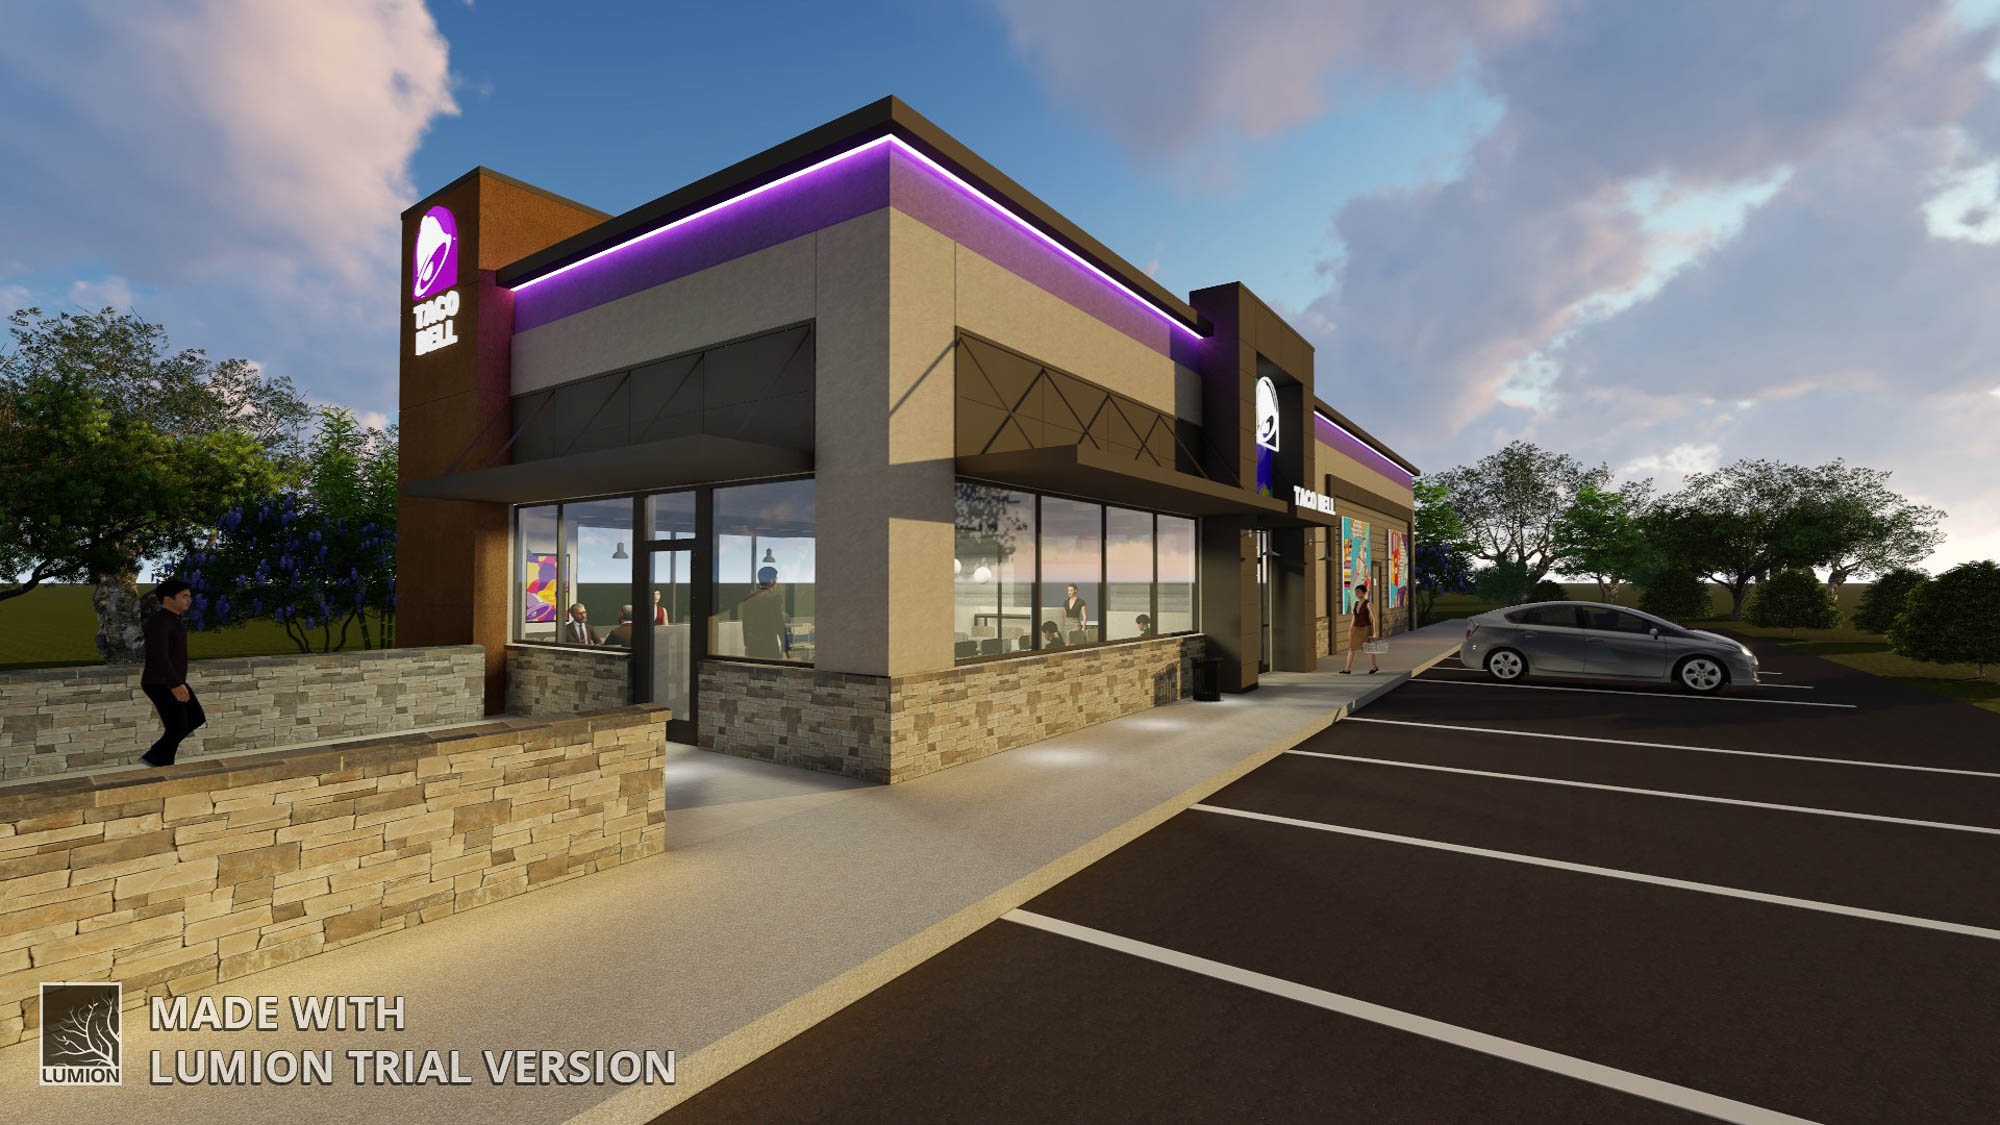 Taco Bell (1 of 4)